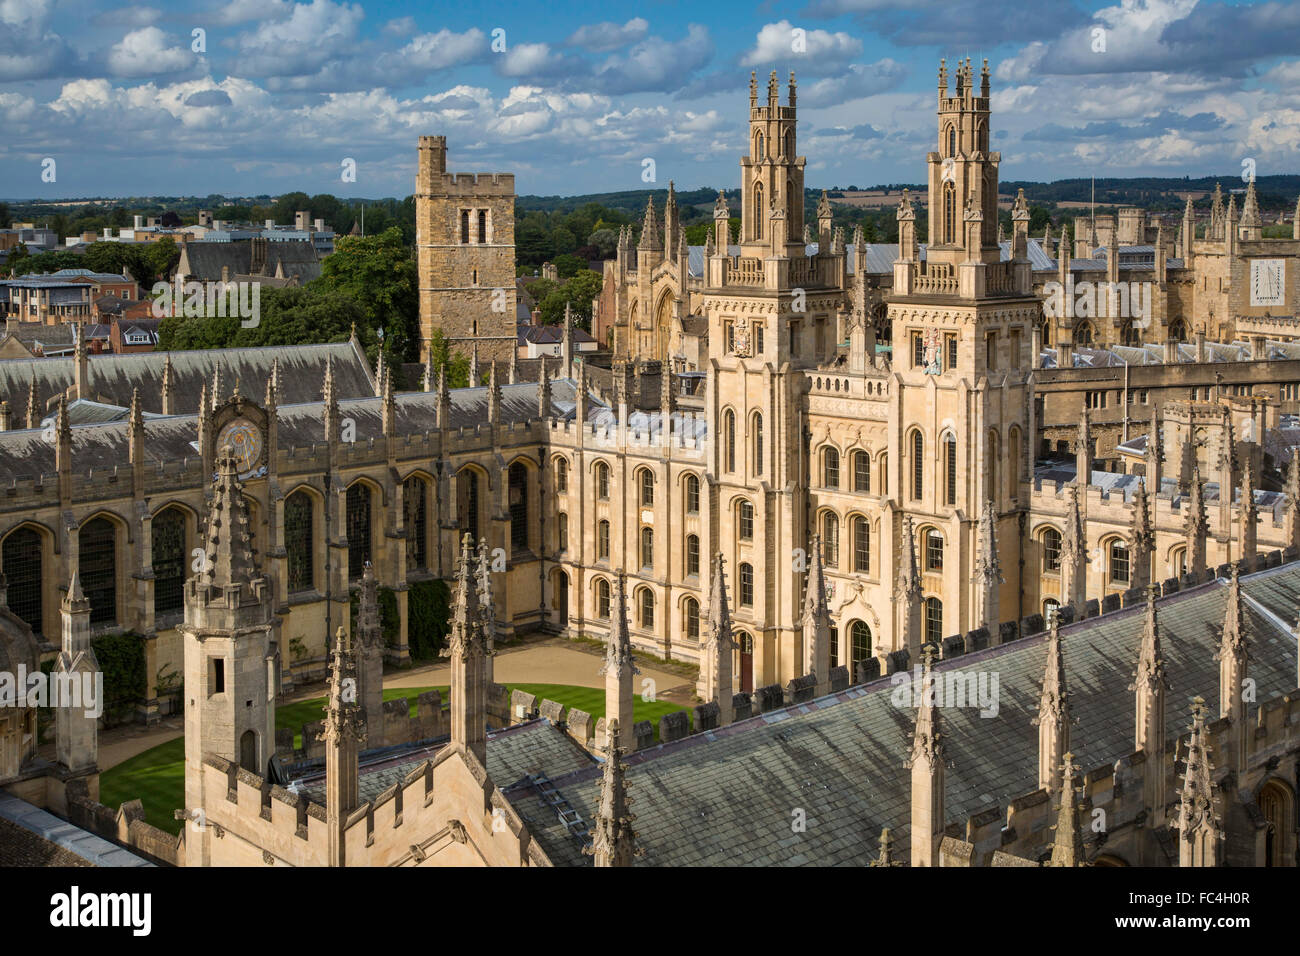 All Souls College and the many spires of Oxford University, Oxfordshire, England - Stock Image